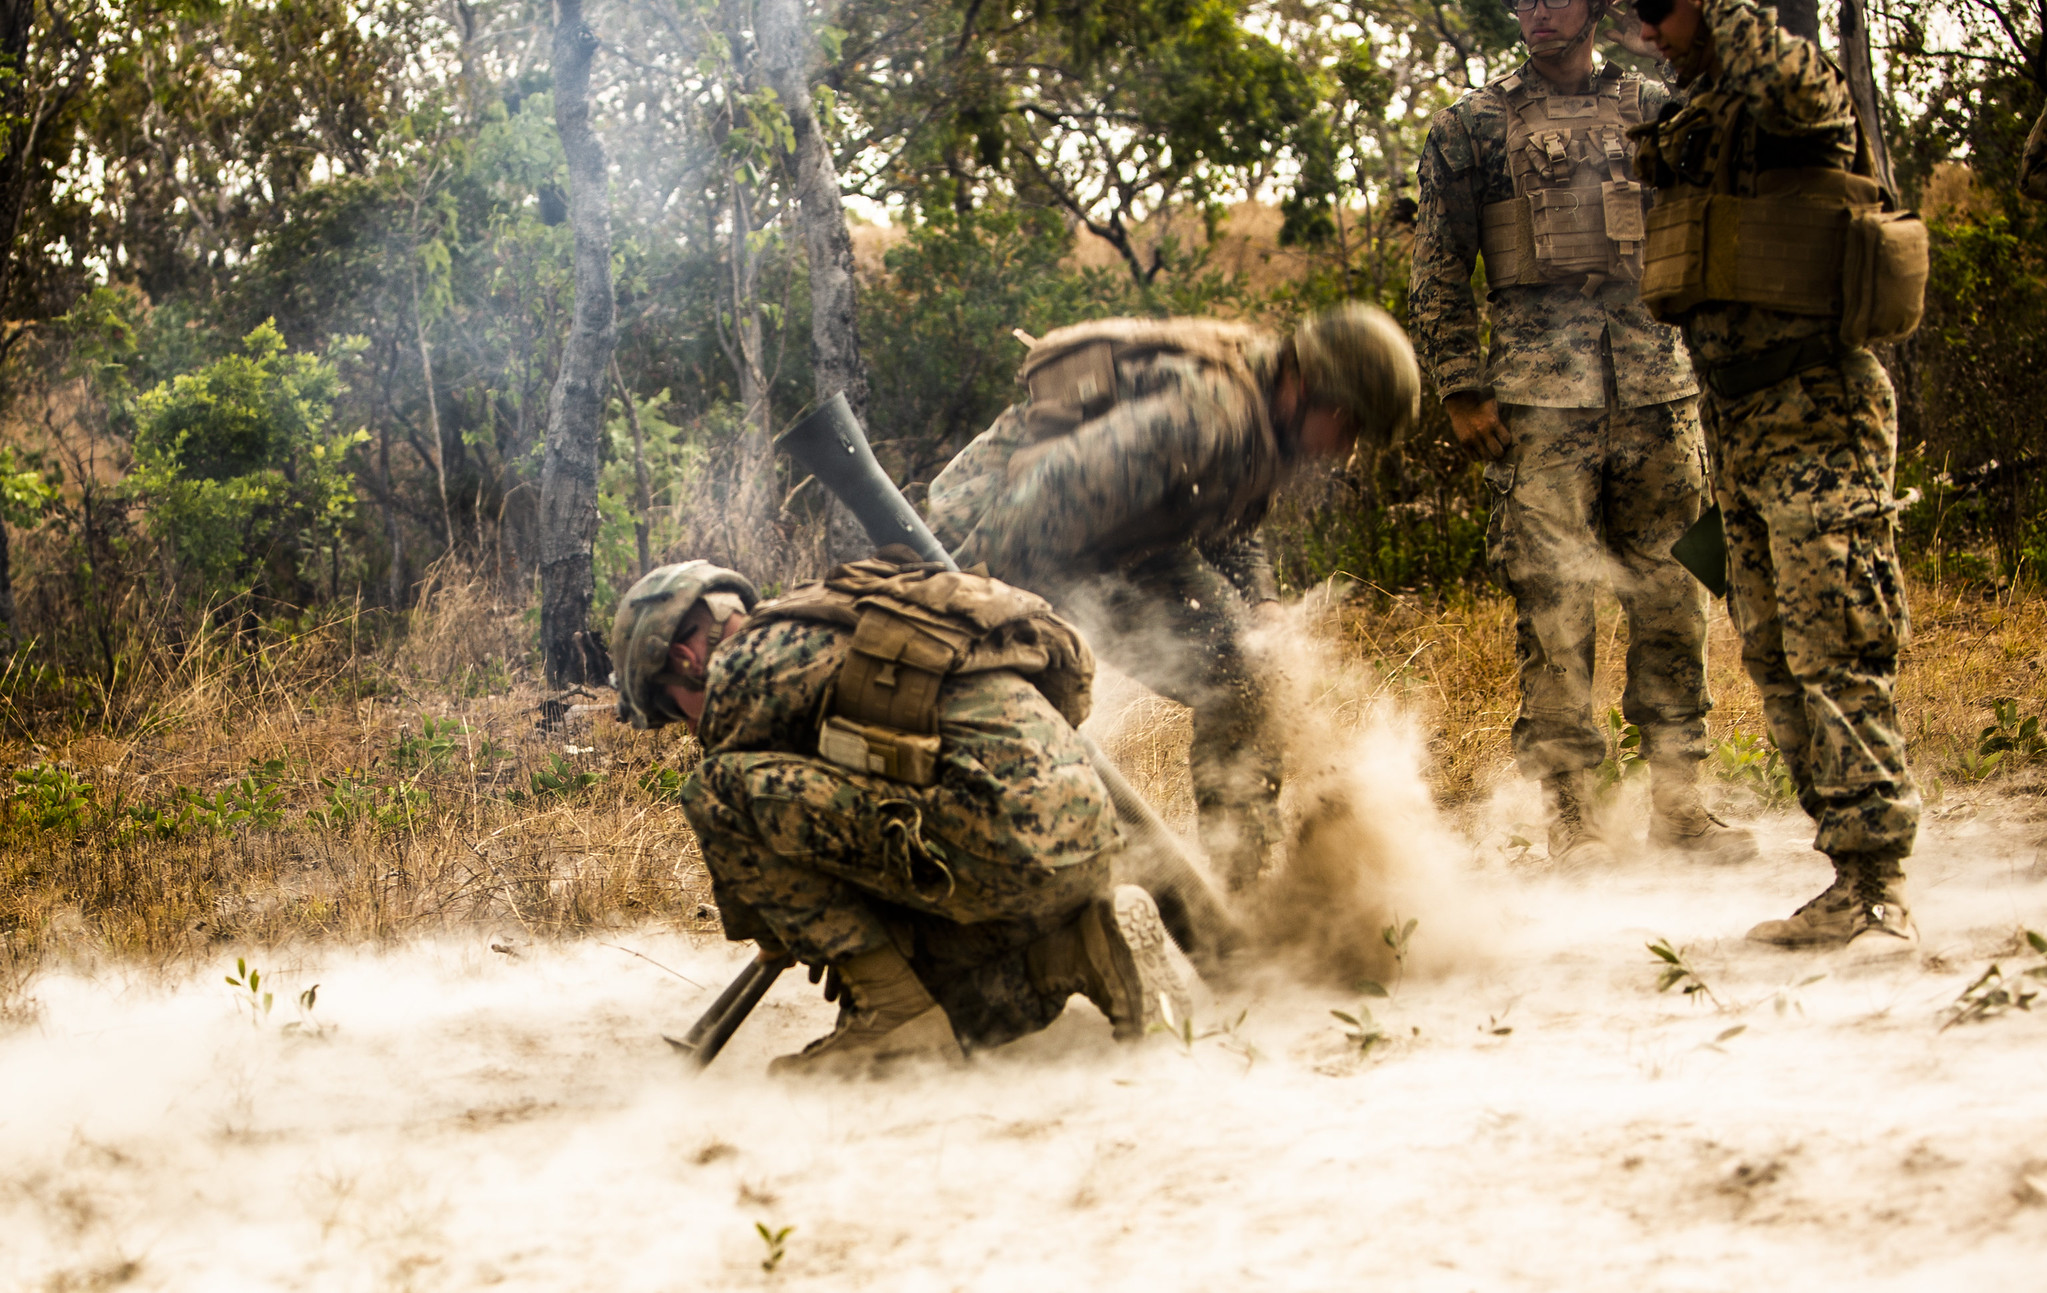 Marines with 3rd Battalion, 3rd Marine Regiment, a part of Marine Rotational Force - Darwin, fire an M252 81mm extended range mortar system during a fire support coordination exercise at Mount Bundey Training Area, Australia, Aug. 9, 2019. (Lance Cpl. Nicholas Filca/Marine Corps)